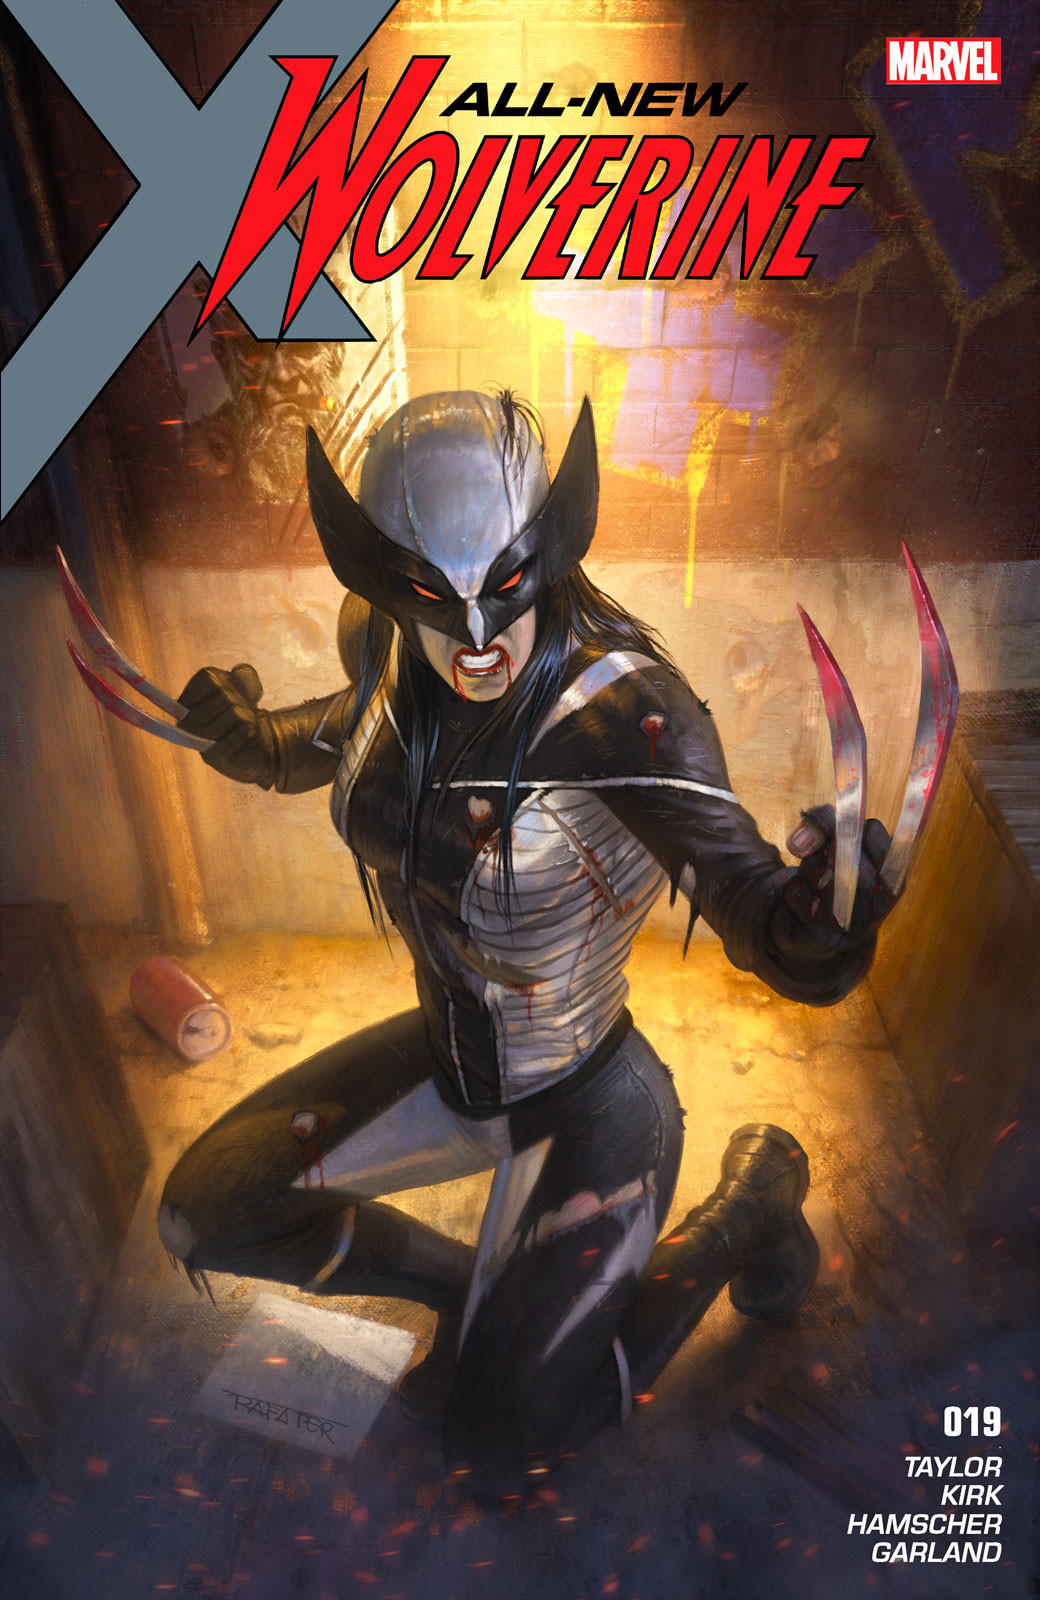 Rafael teruel marvel cover all new wolverine by rafater x23